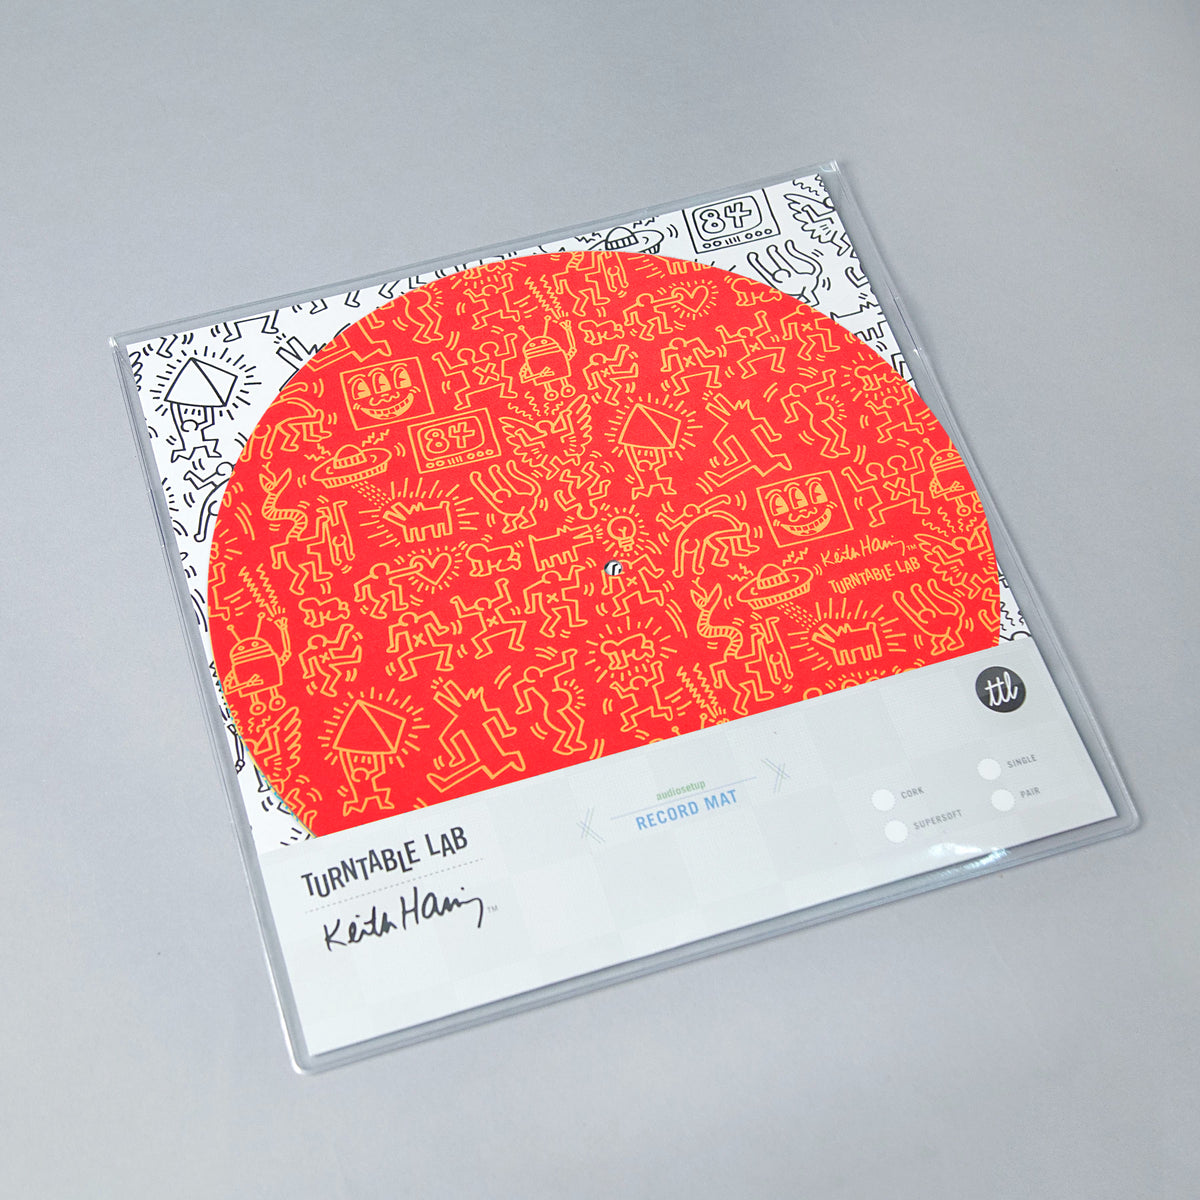 Turntable Lab: Keith Haring Slipmat Record Mat - Red packaging